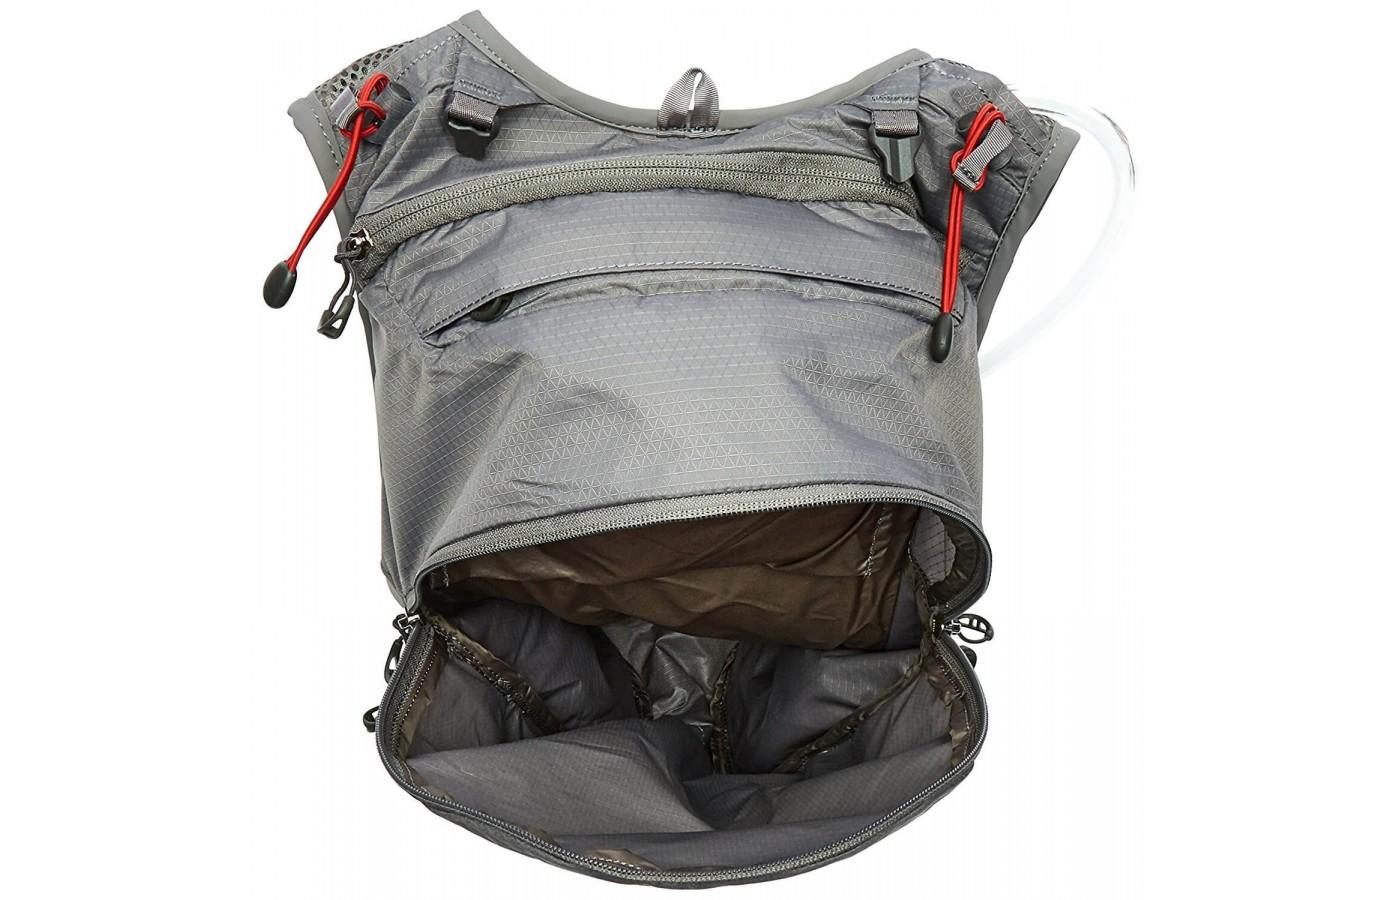 The Osprey Duro 15 has plenty of pockets to organize all of your gear